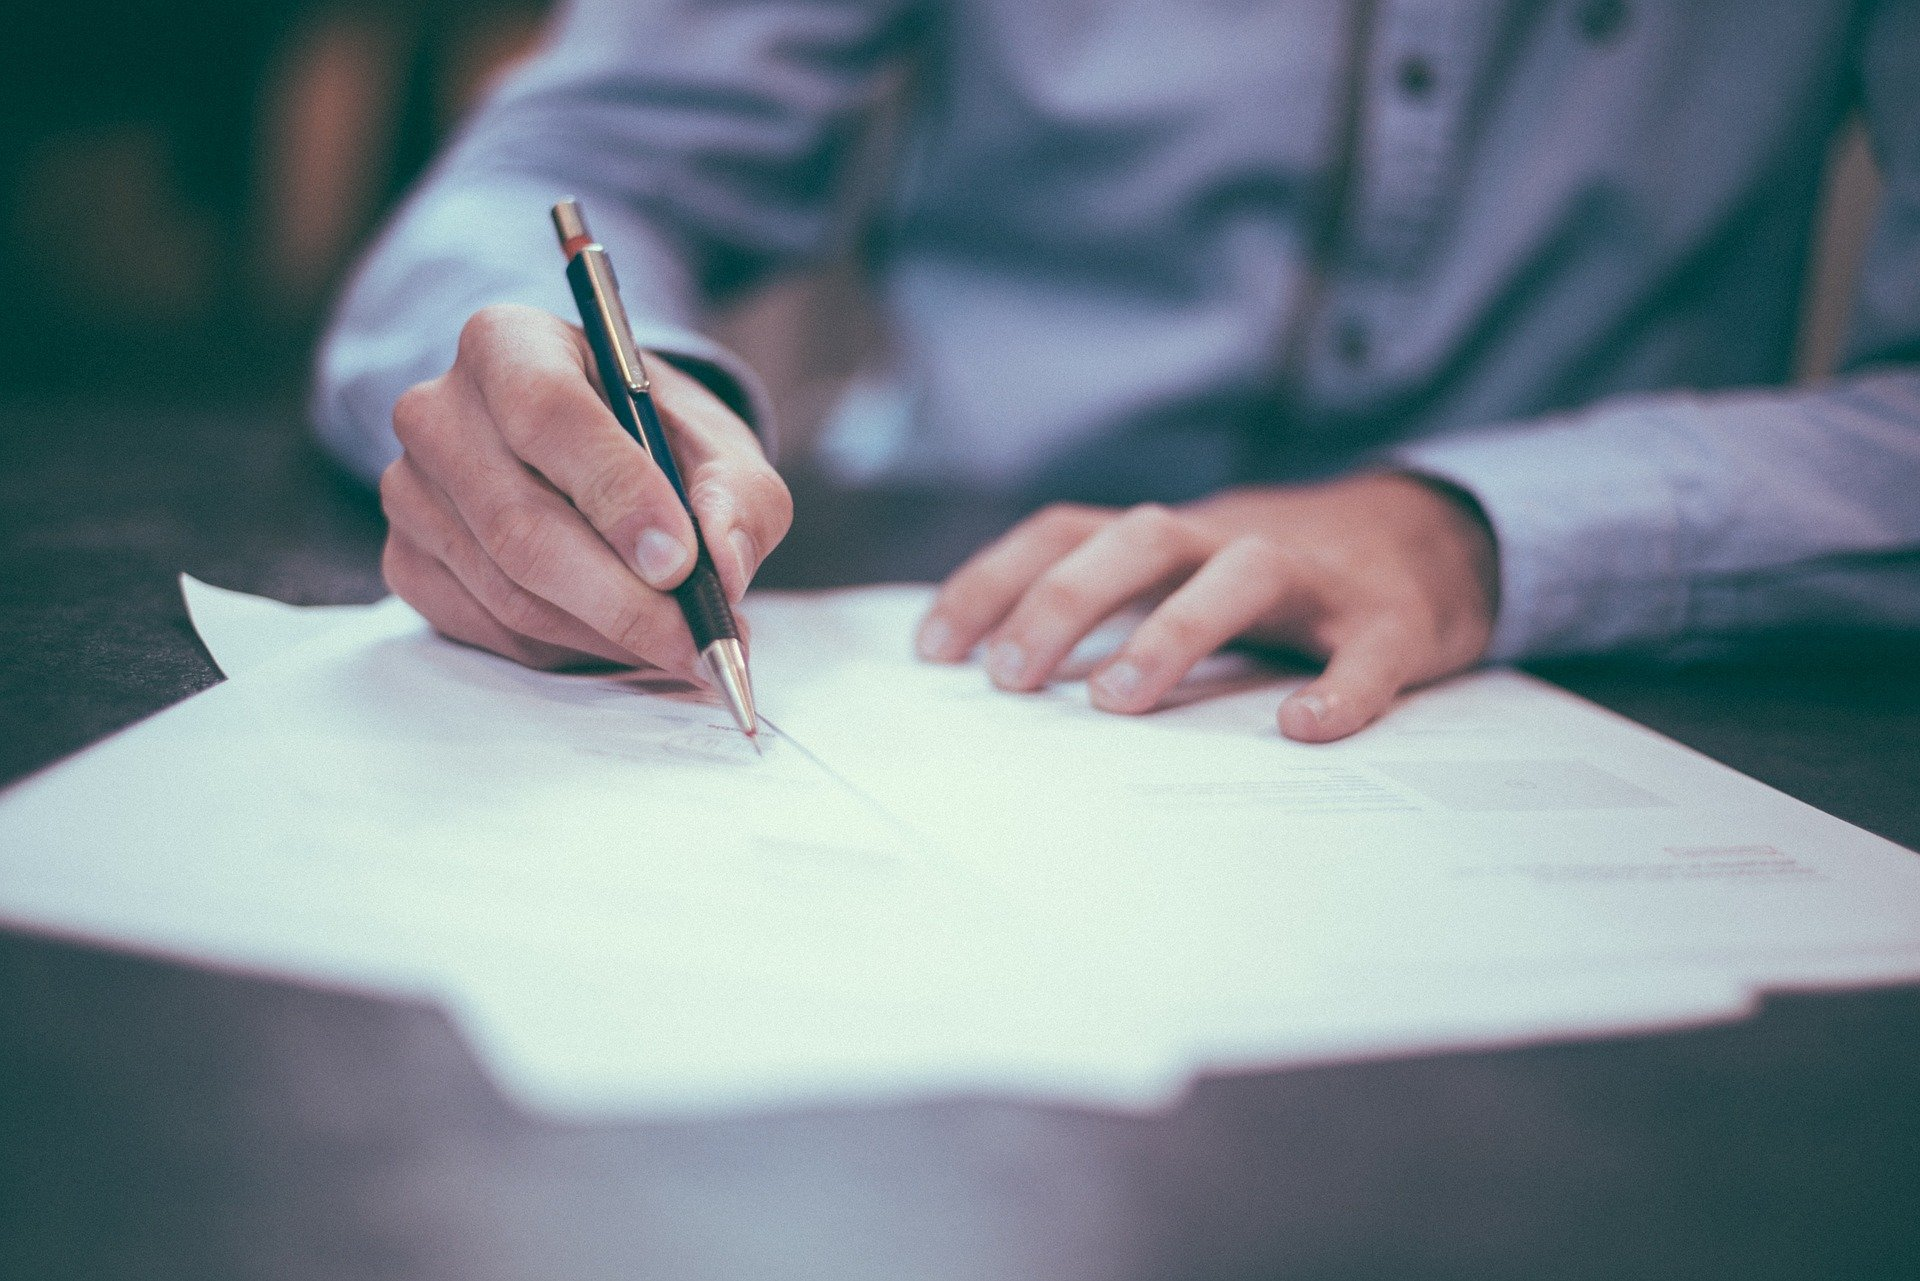 Adjusting employment conditions: what are the employer's options?